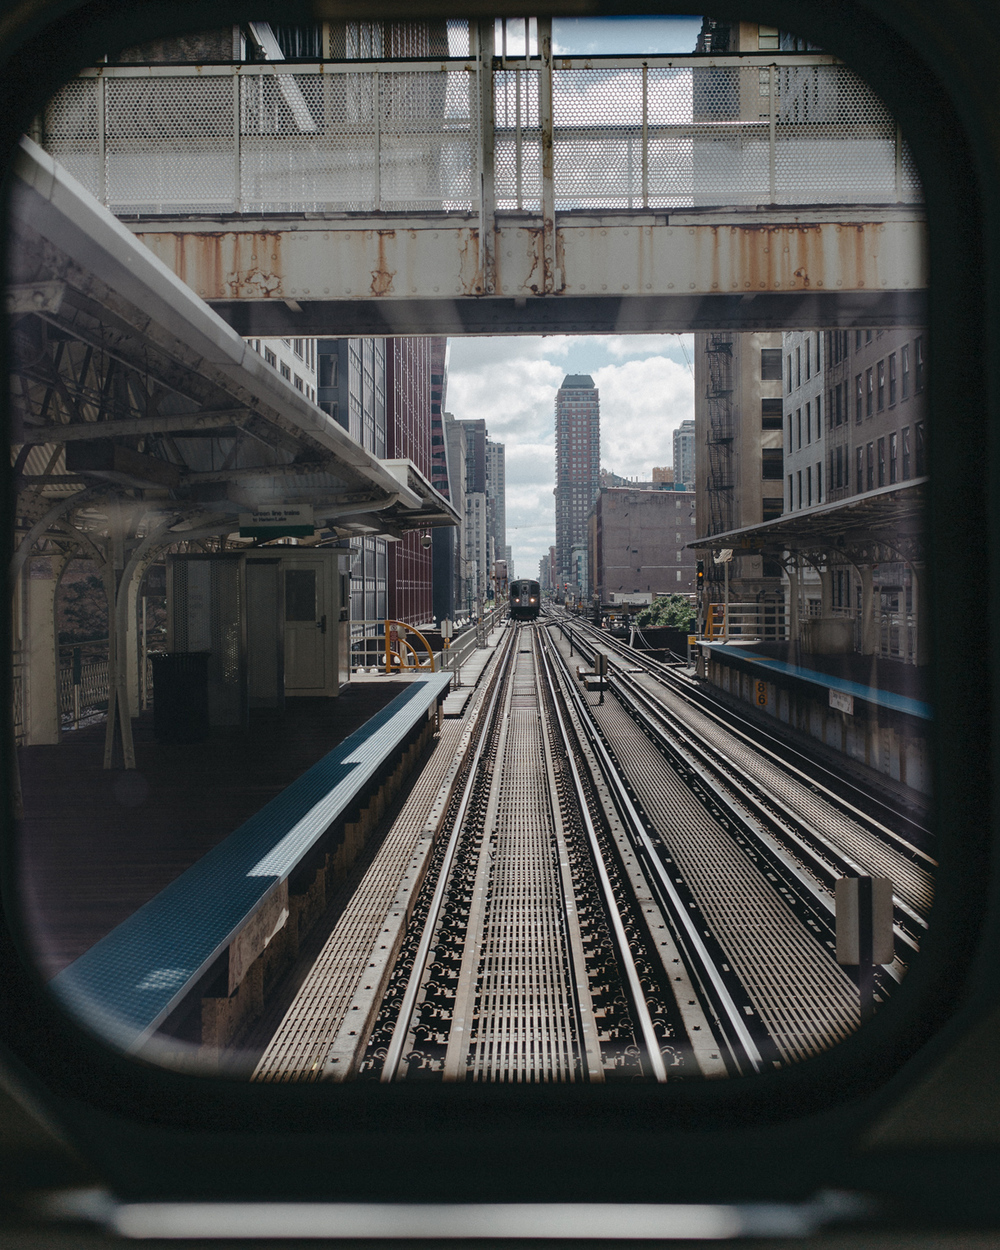 012-chicago-train.jpg